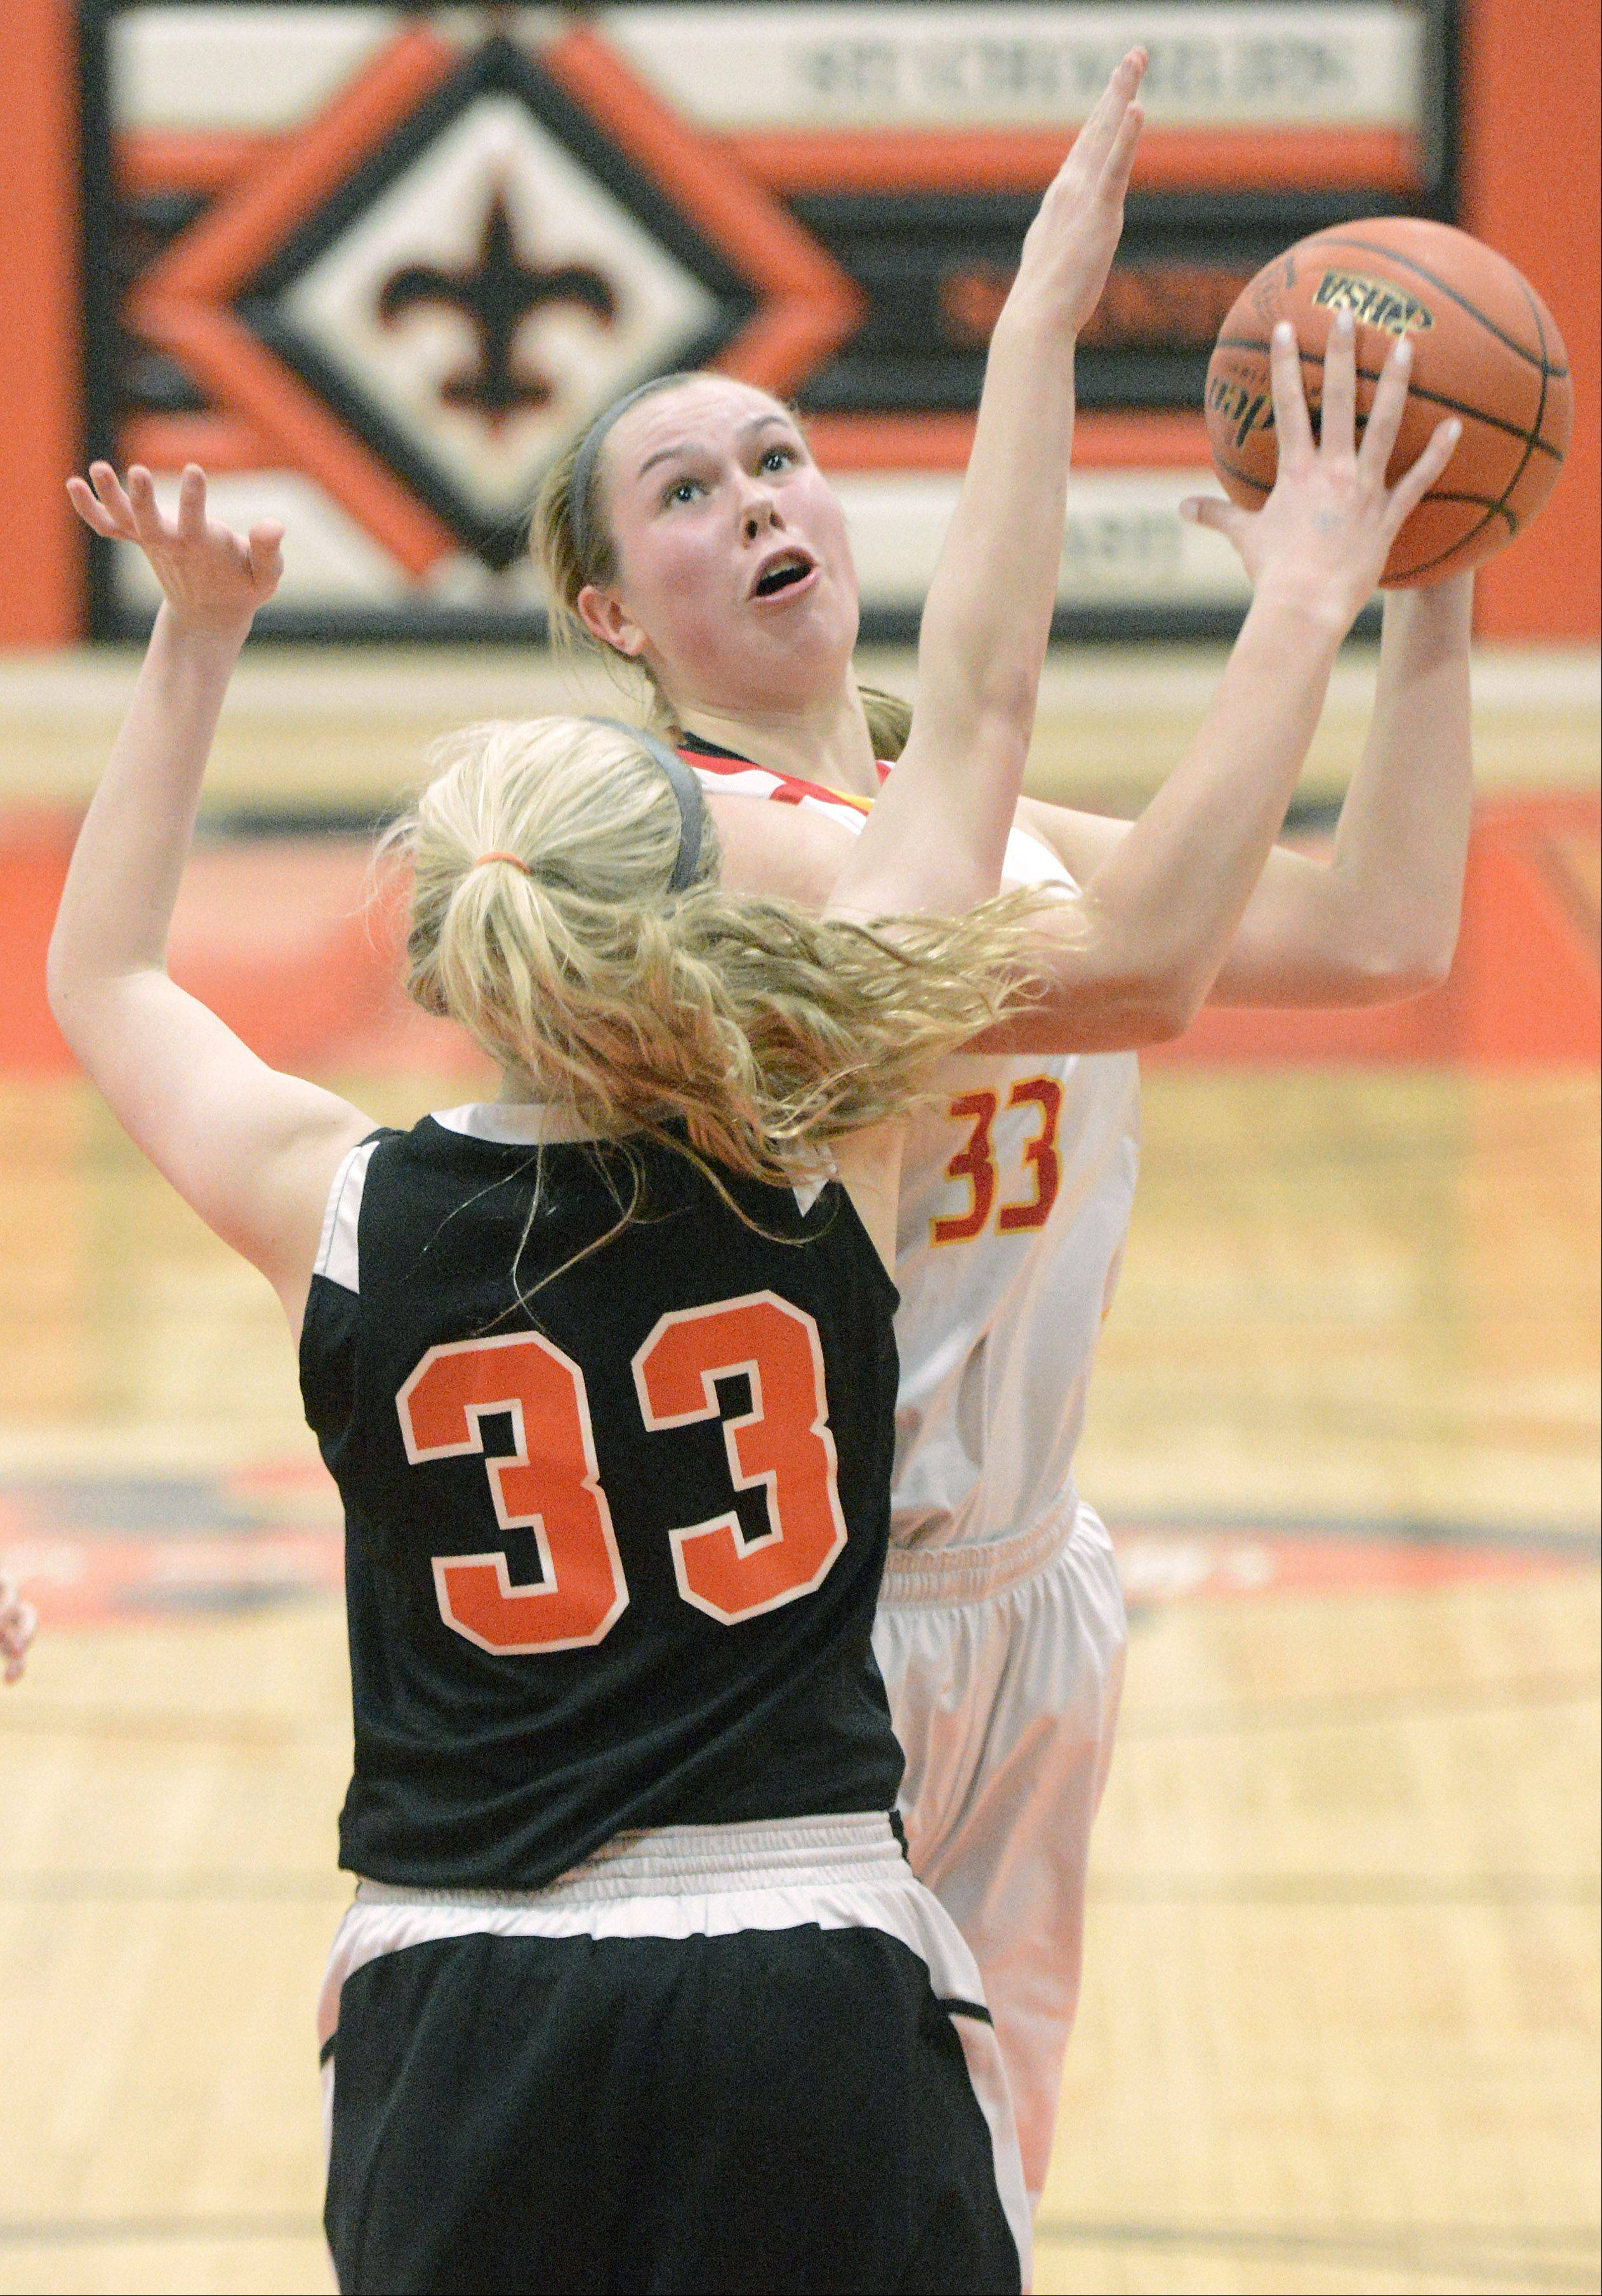 Laura Stoecker/lstoecker@dailyherald.com St. Charles East's Hannah Nowling attempts to block a shot by Batavia's Erin Bayram in the third quarter of the 4A regional on Tuesday, February 12.